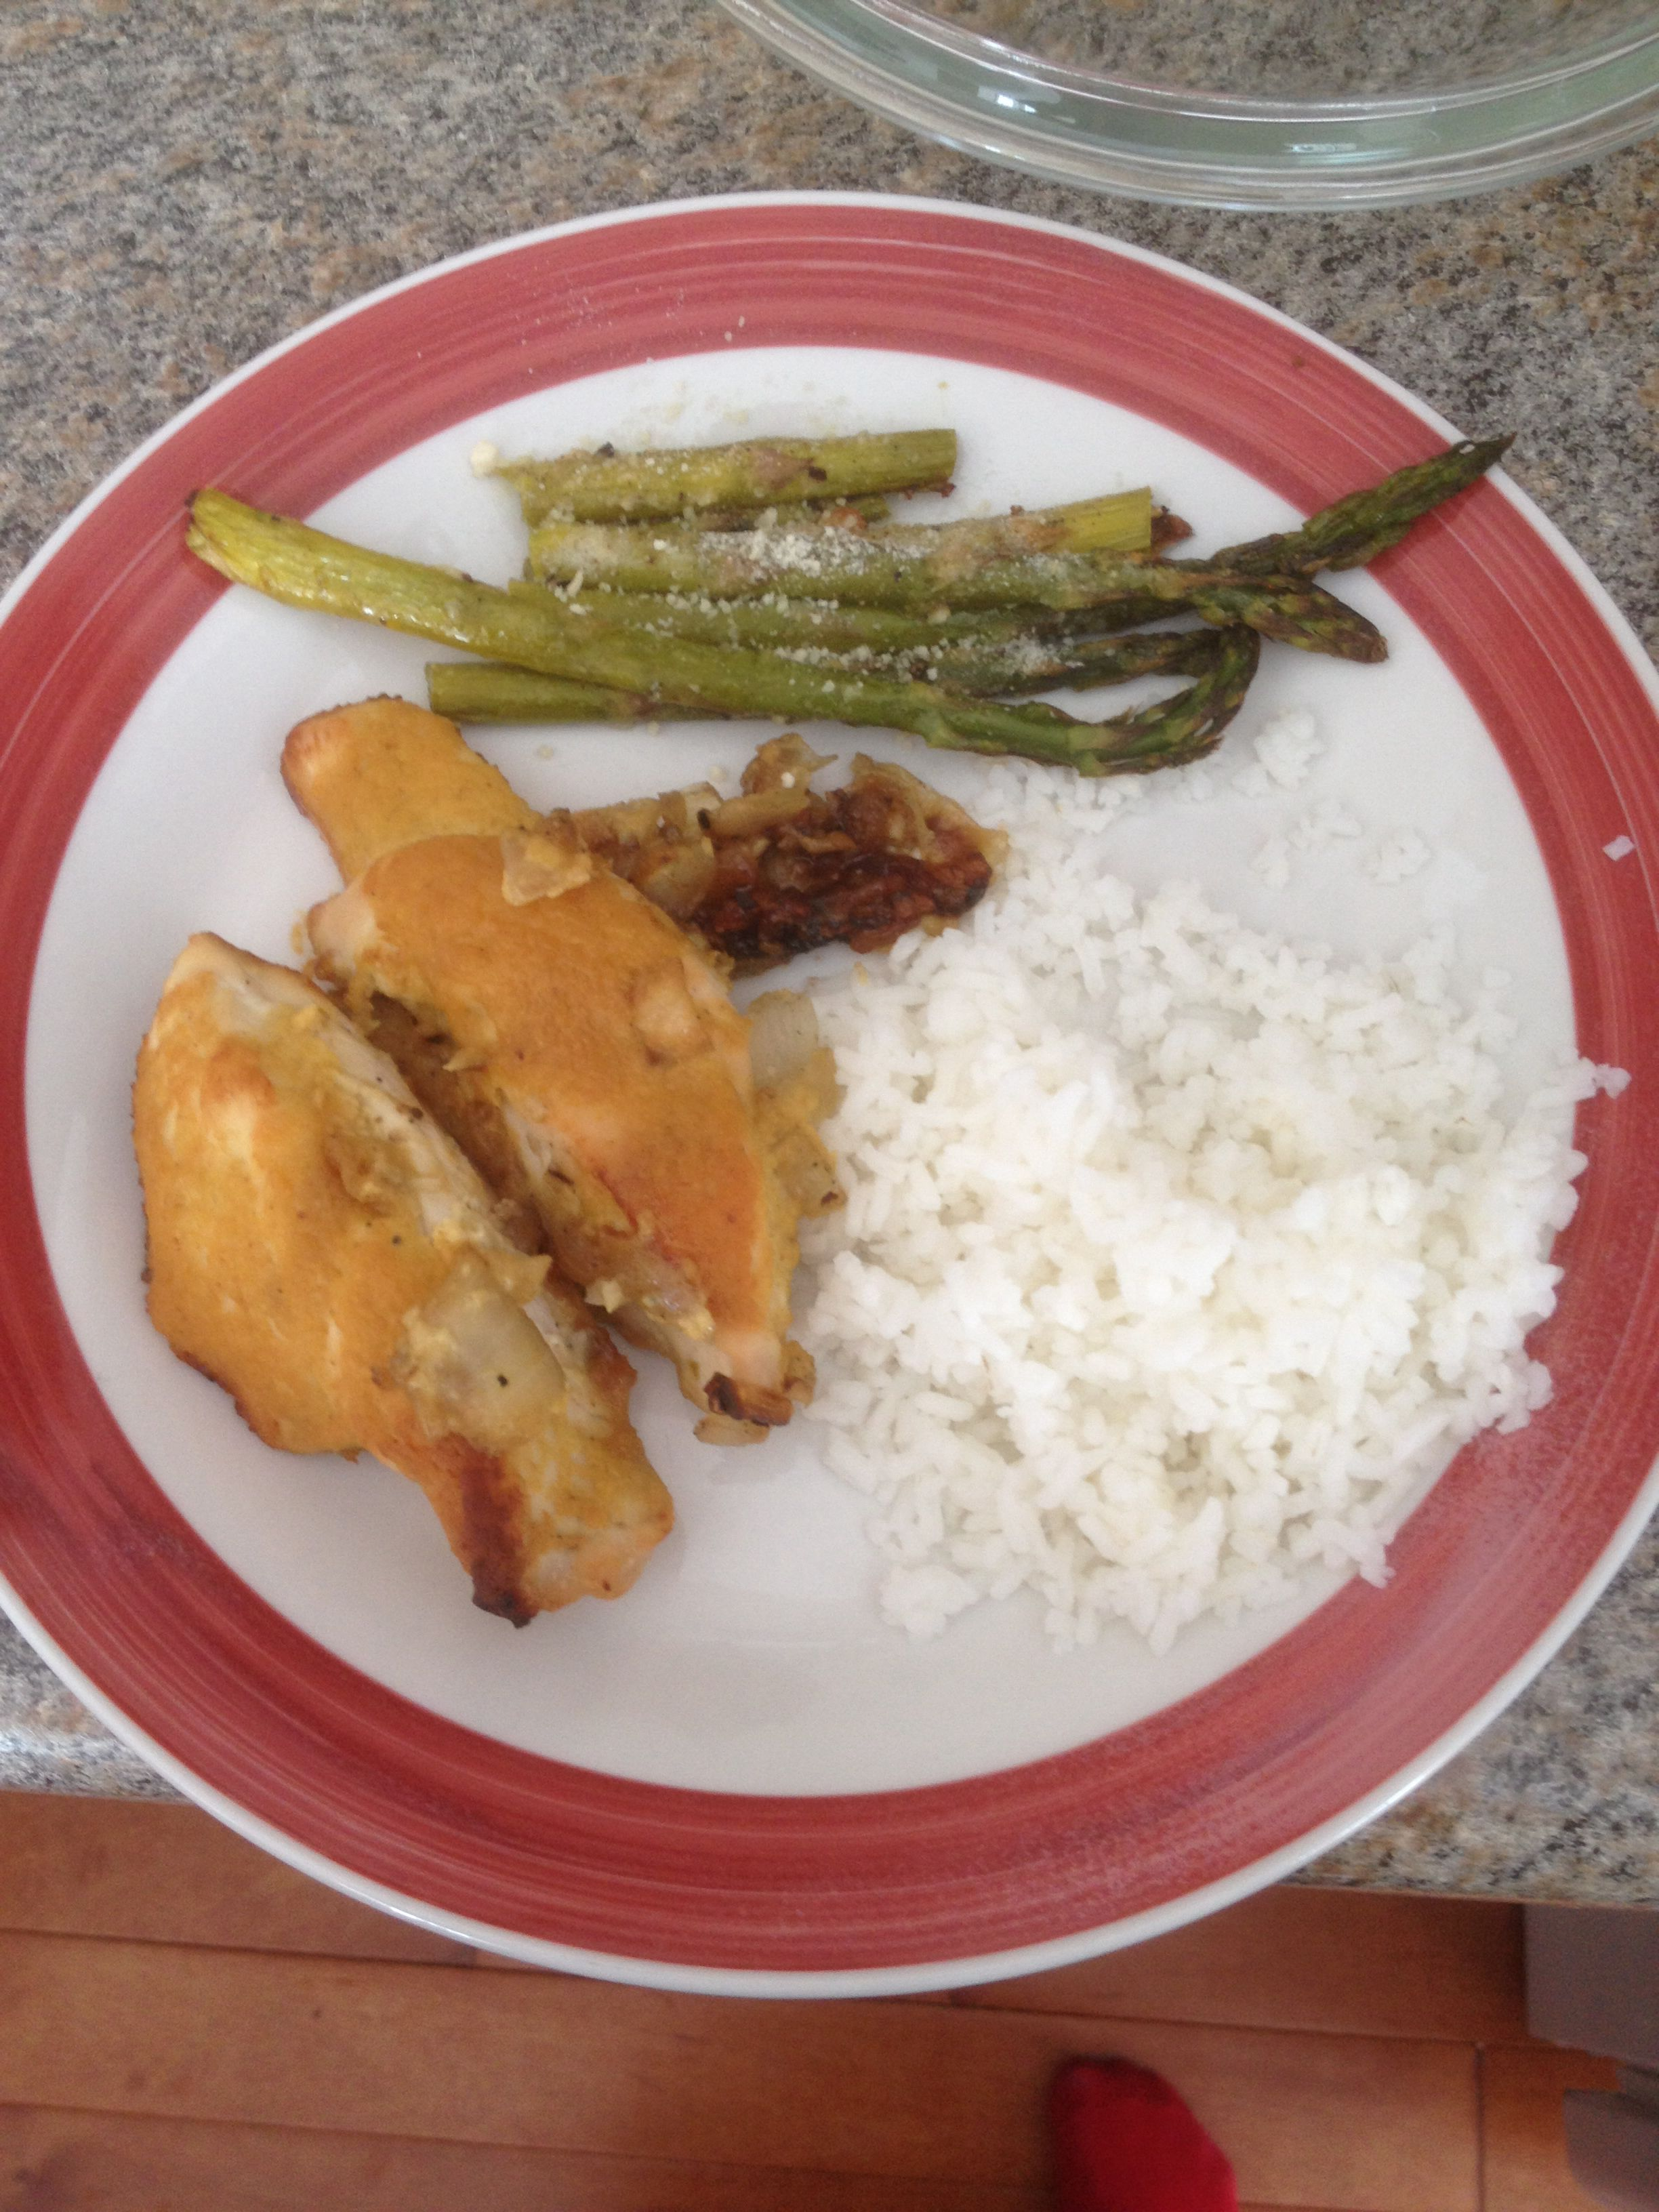 Honey mustard baked chicken with Parmesan asparagus and rice. SUCCESS!!! :)